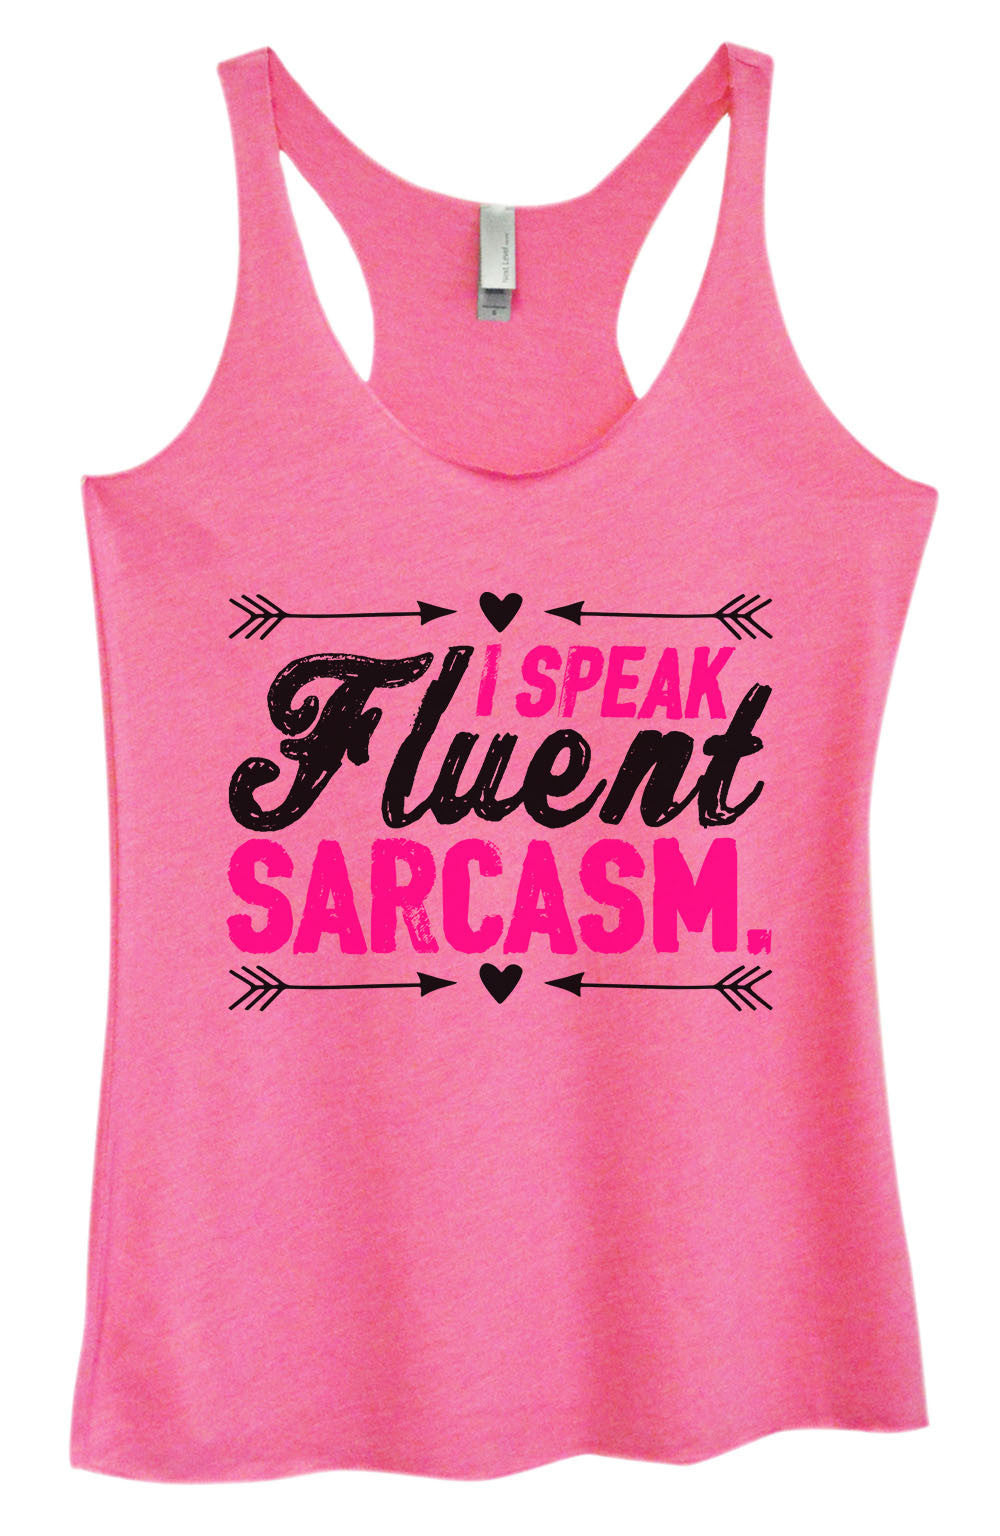 Womens Fashion Triblend Tank Top - I Speak Fluent Sarcasm. - Tri-1410 - Funny Shirts Tank Tops Burnouts and Triblends  - 4